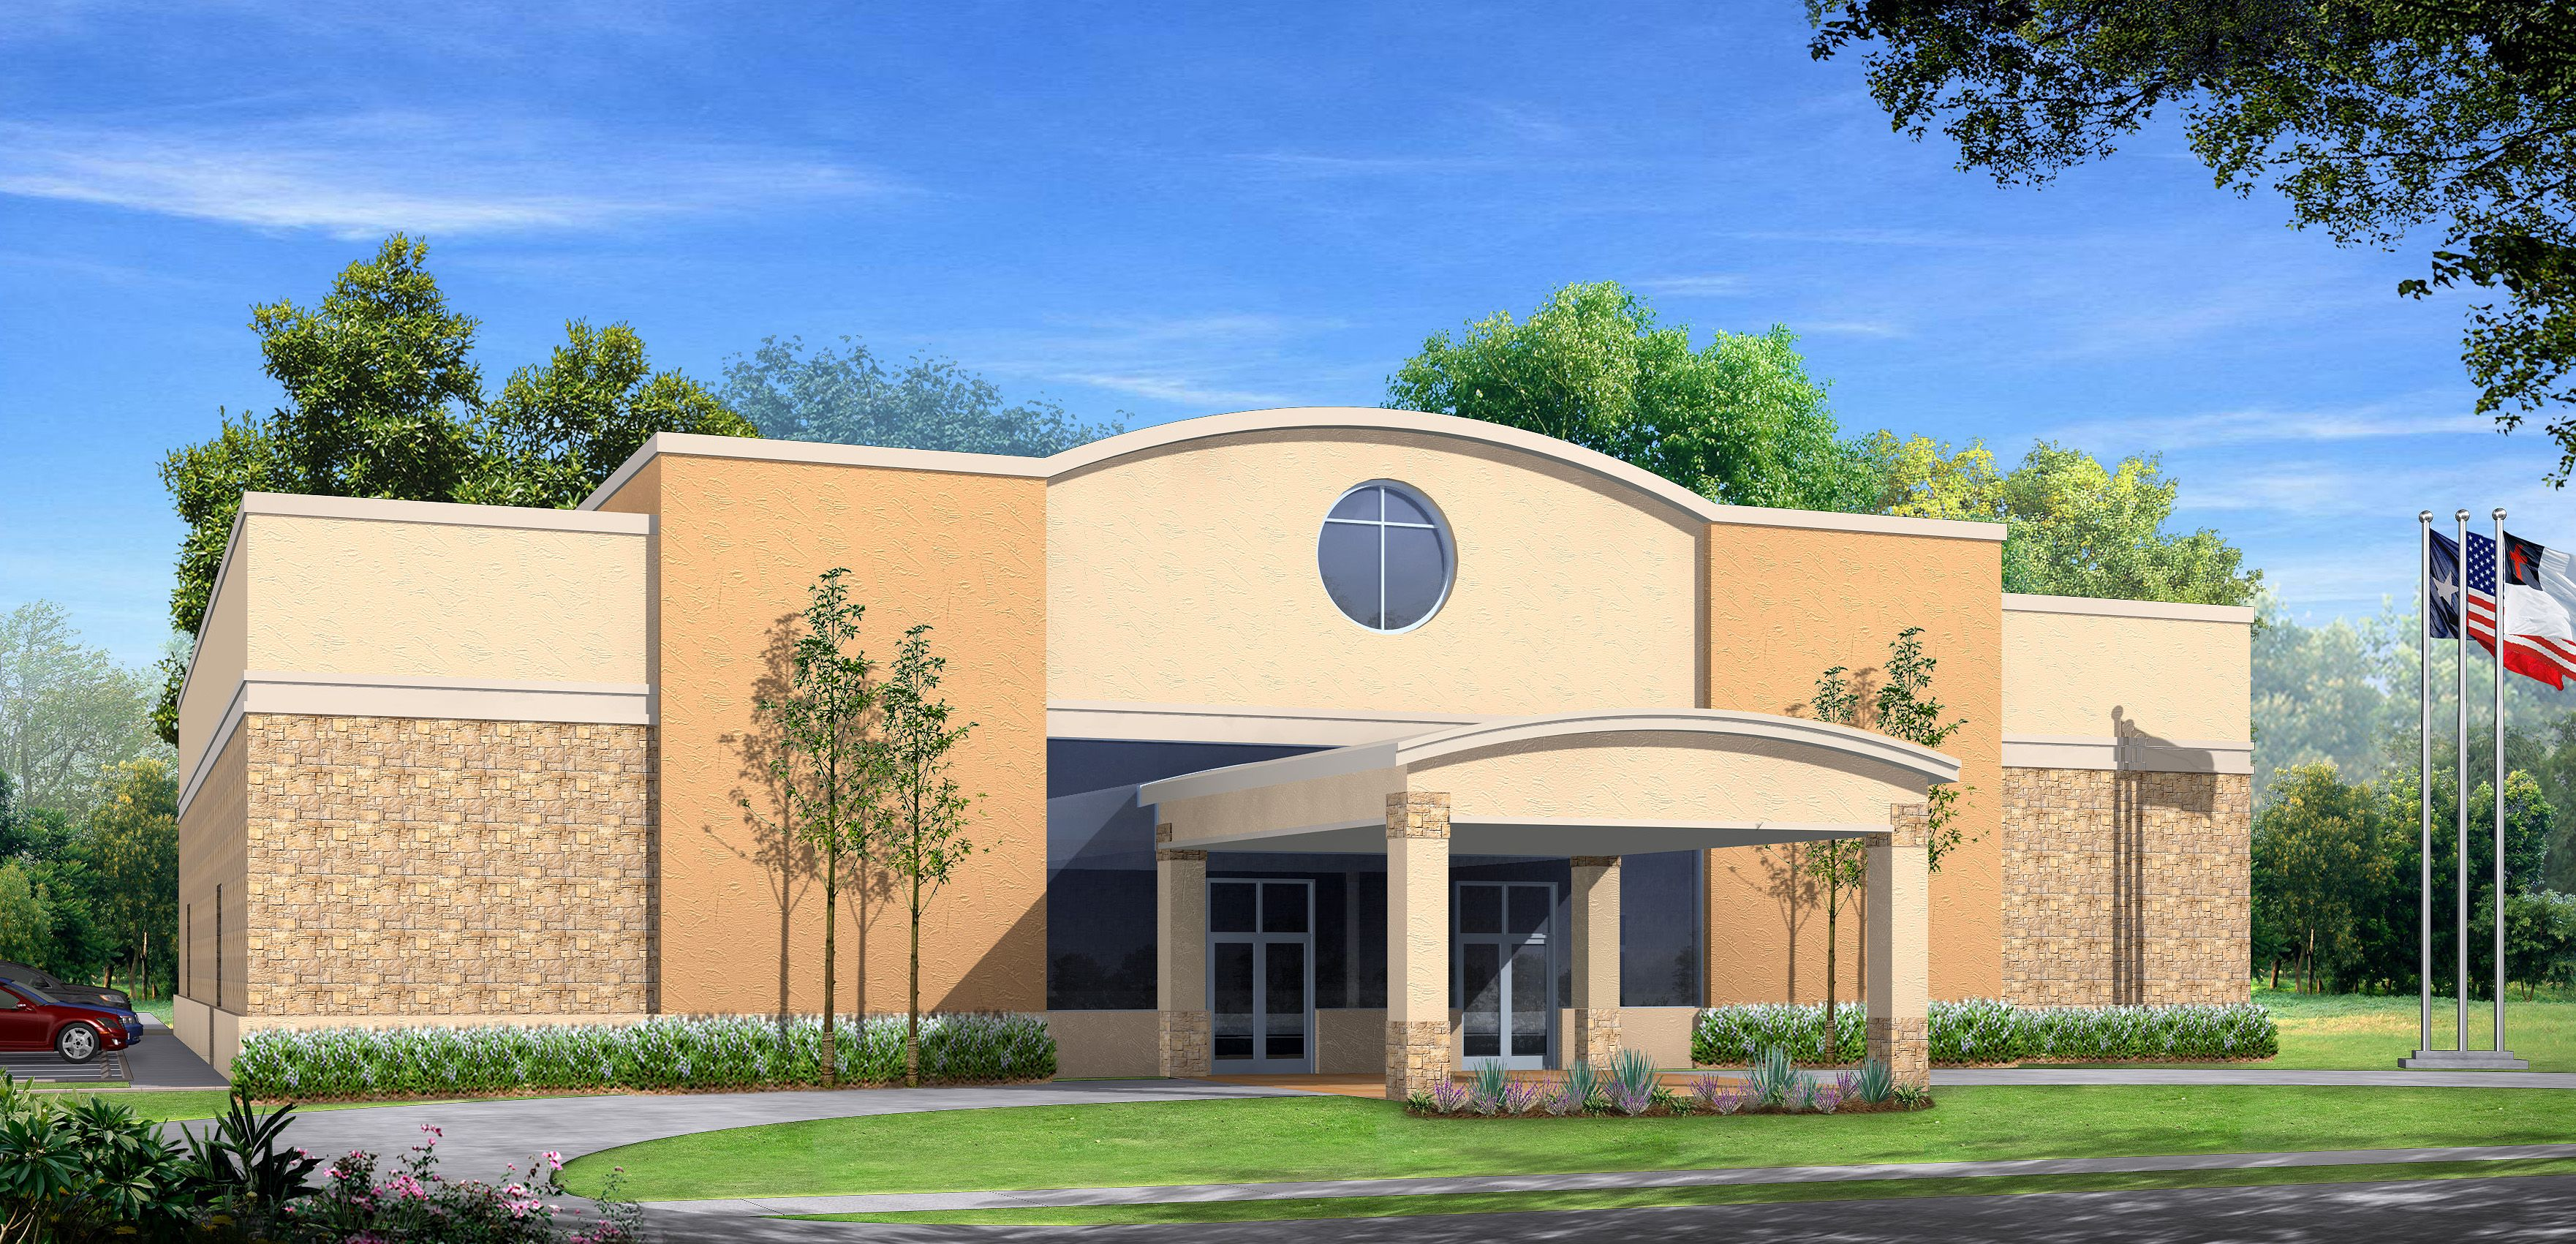 Church Building Designs Alvin Missionary Baptist Church